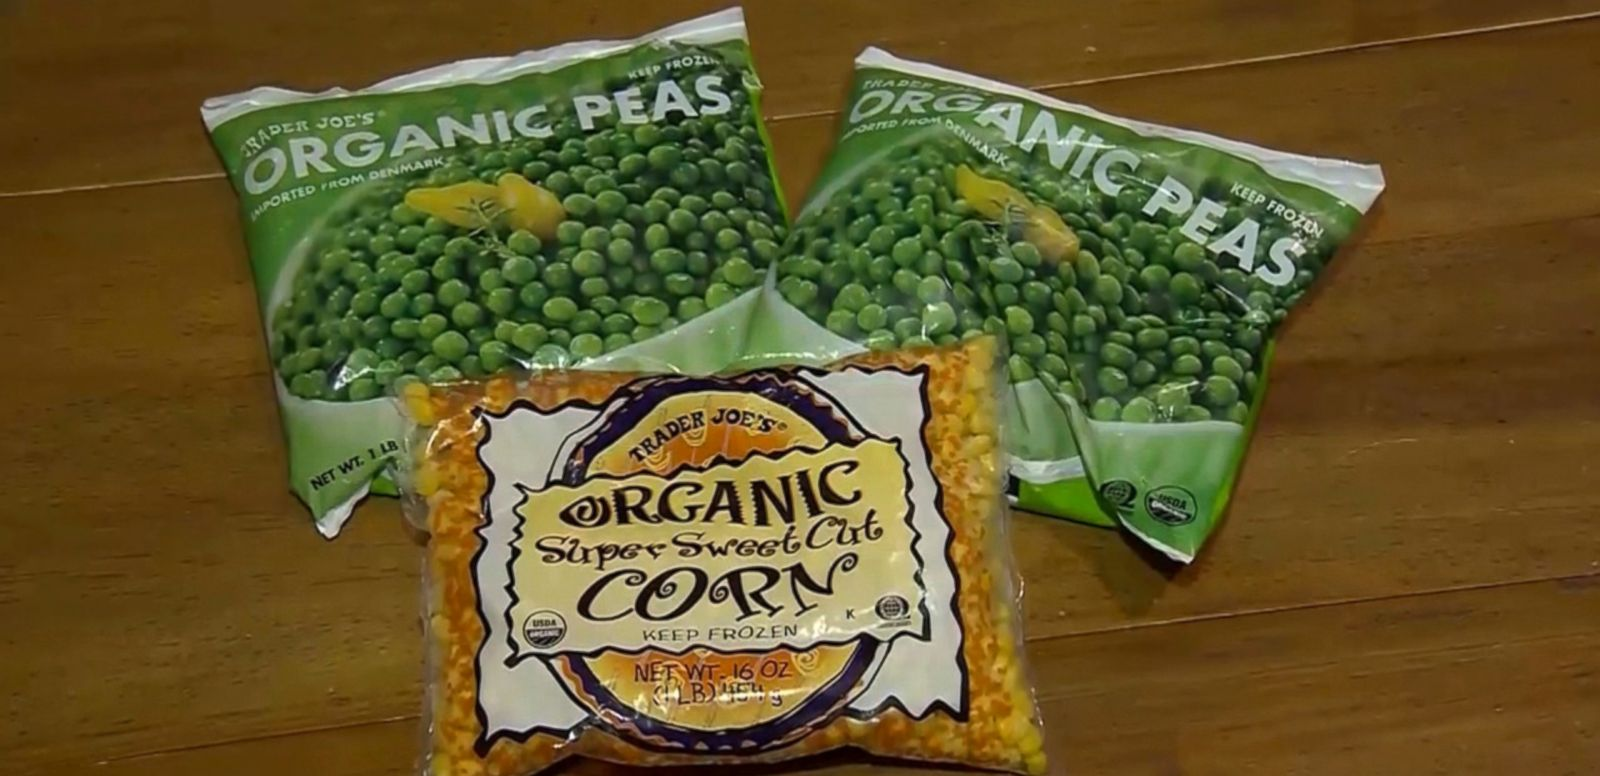 VIDEO: CRF Frozen Foods of Pasco, Washington, has expanded a voluntary recall for some of its products, which included organic and non-organic fruits and vegetables because of the risk of Listeria, according to the company's statement.